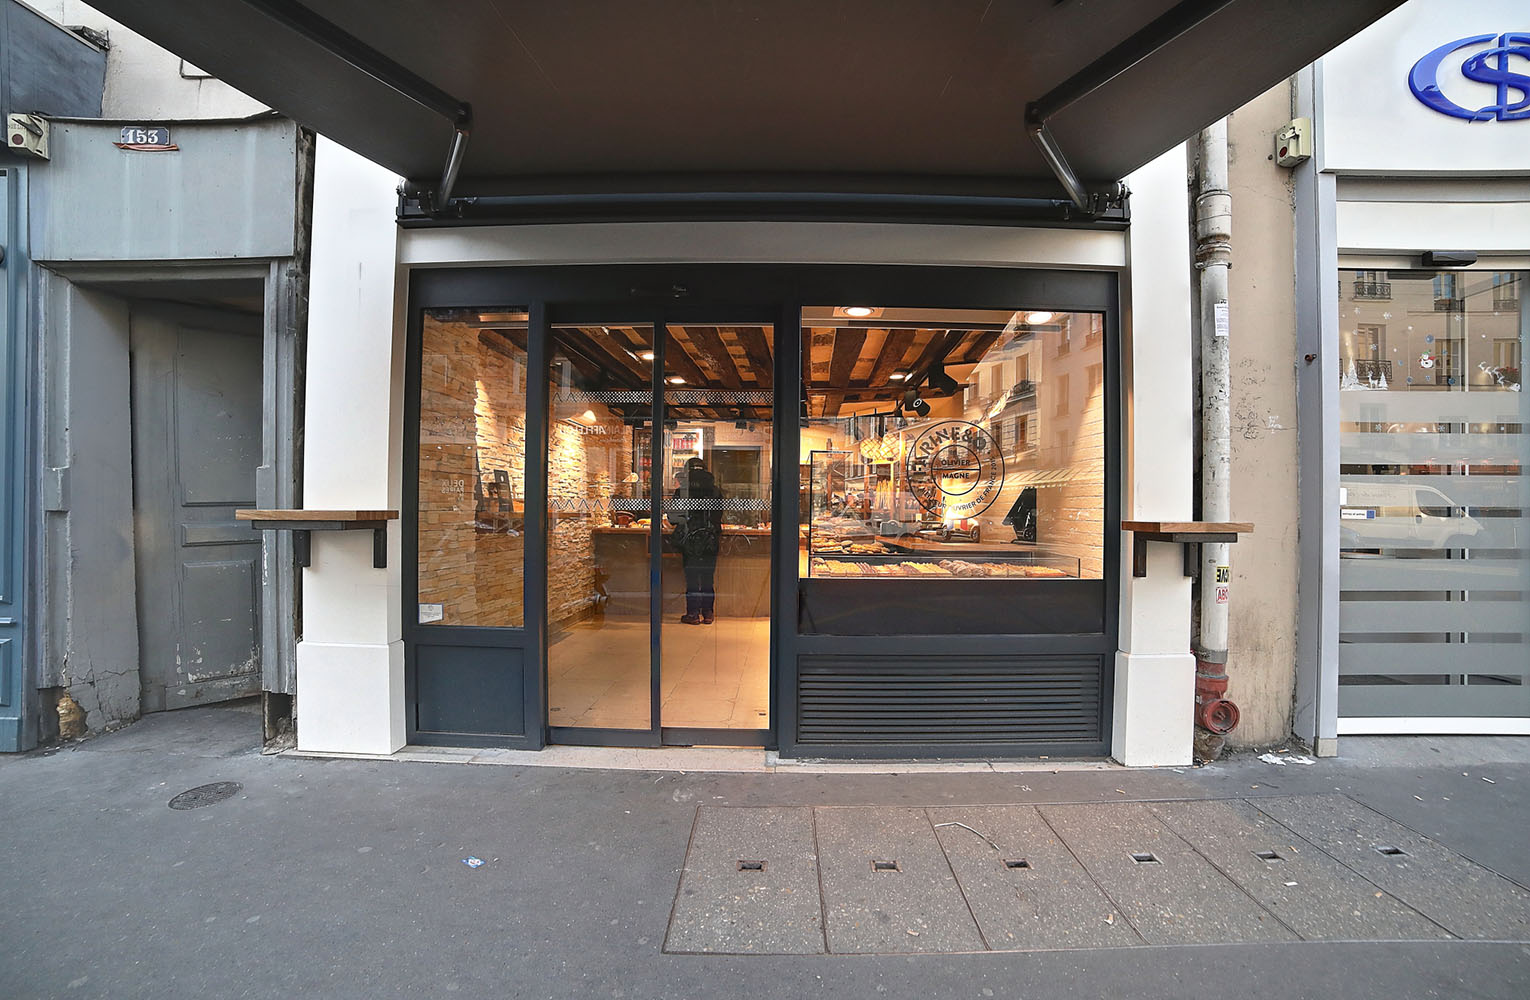 boulangerie_farineo27